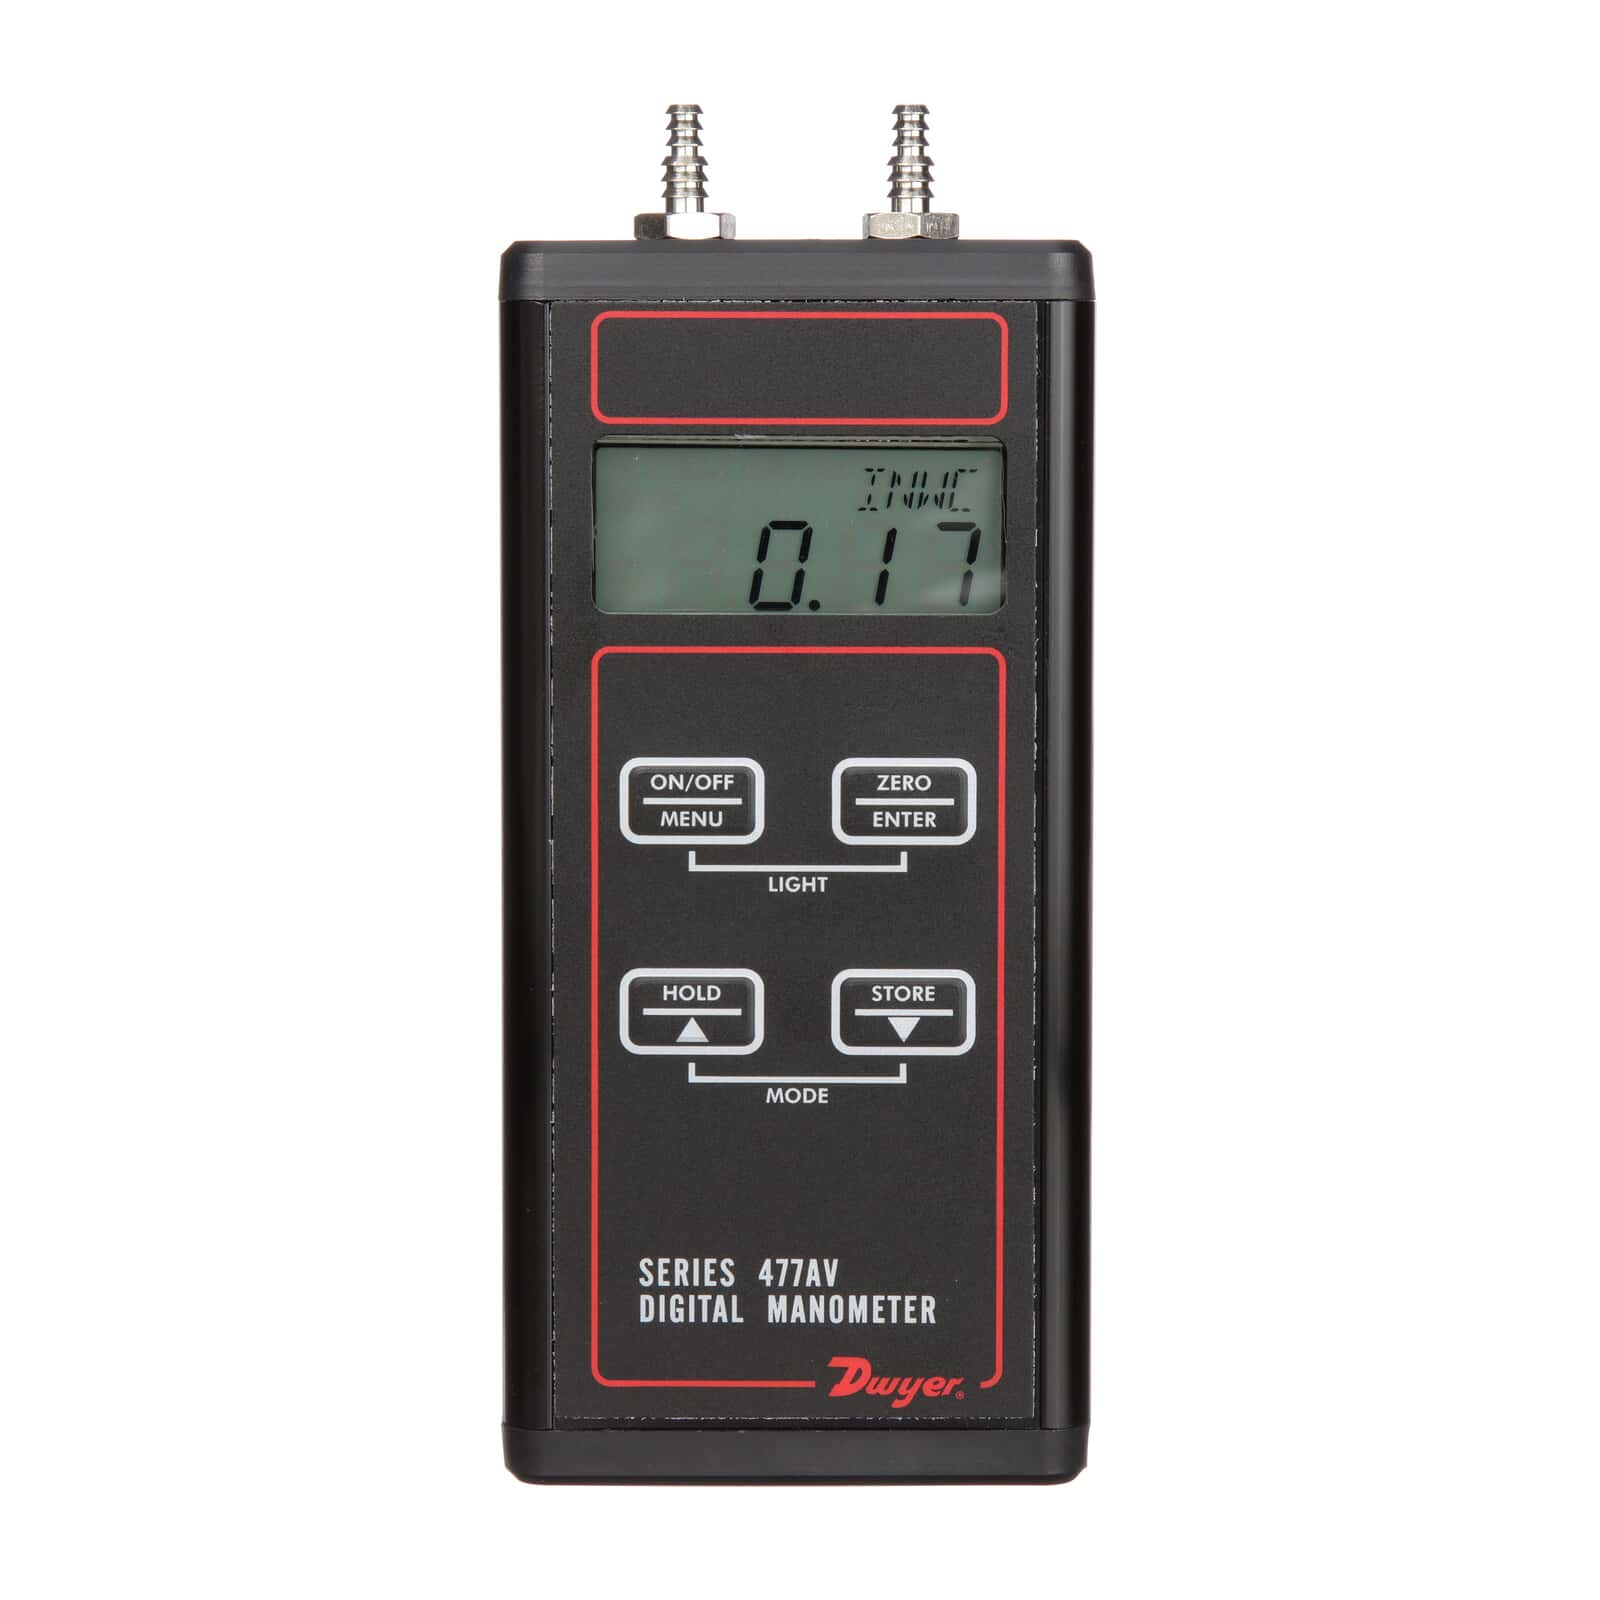 Series 477AV | Handheld Digital Manometer are available with